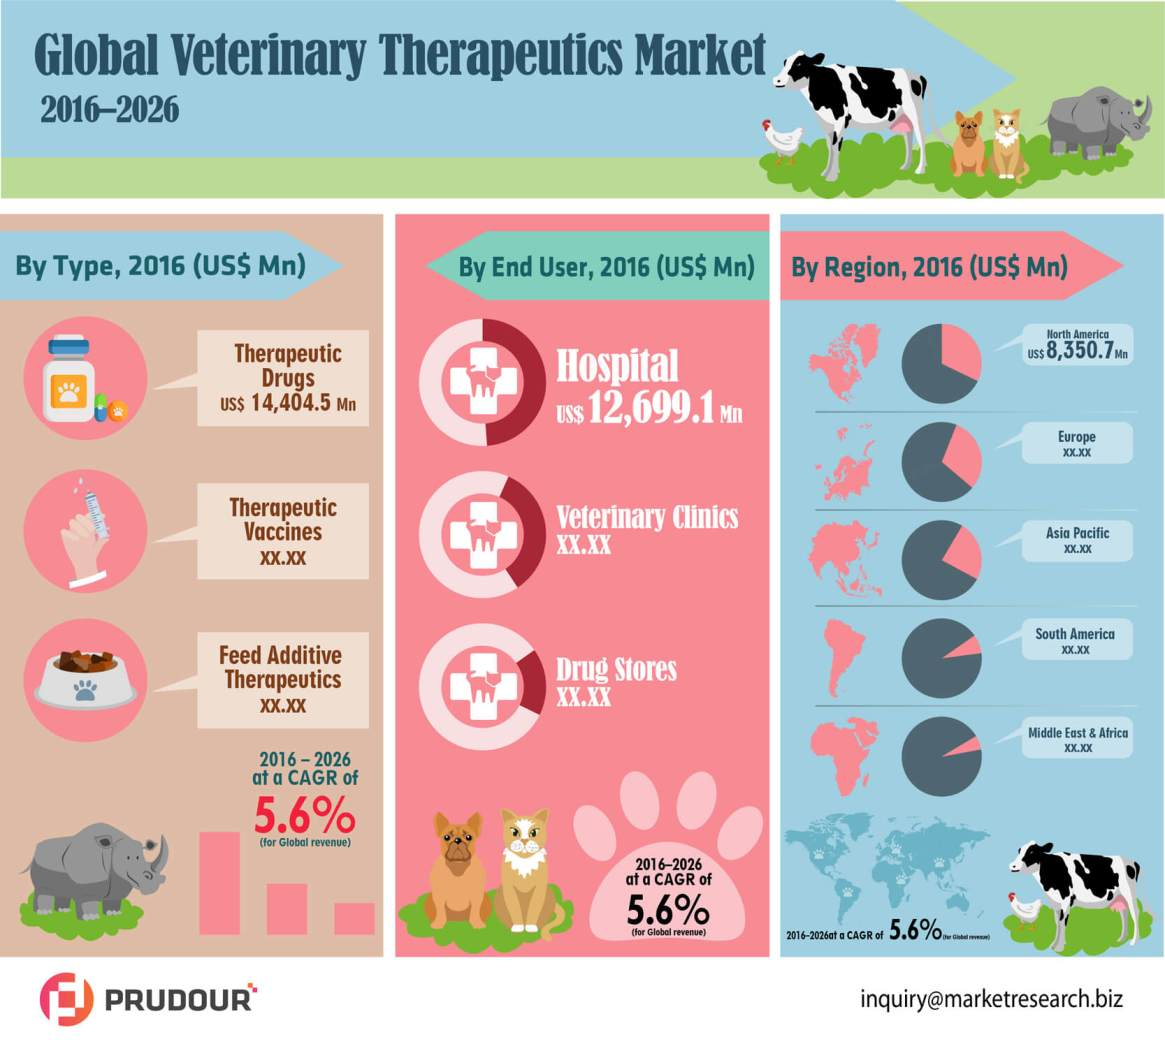 CAGR Of 6.0%: Global Veterinary Therapeutics Market about to hit CAGR of 6.0% from 2017 to 2026